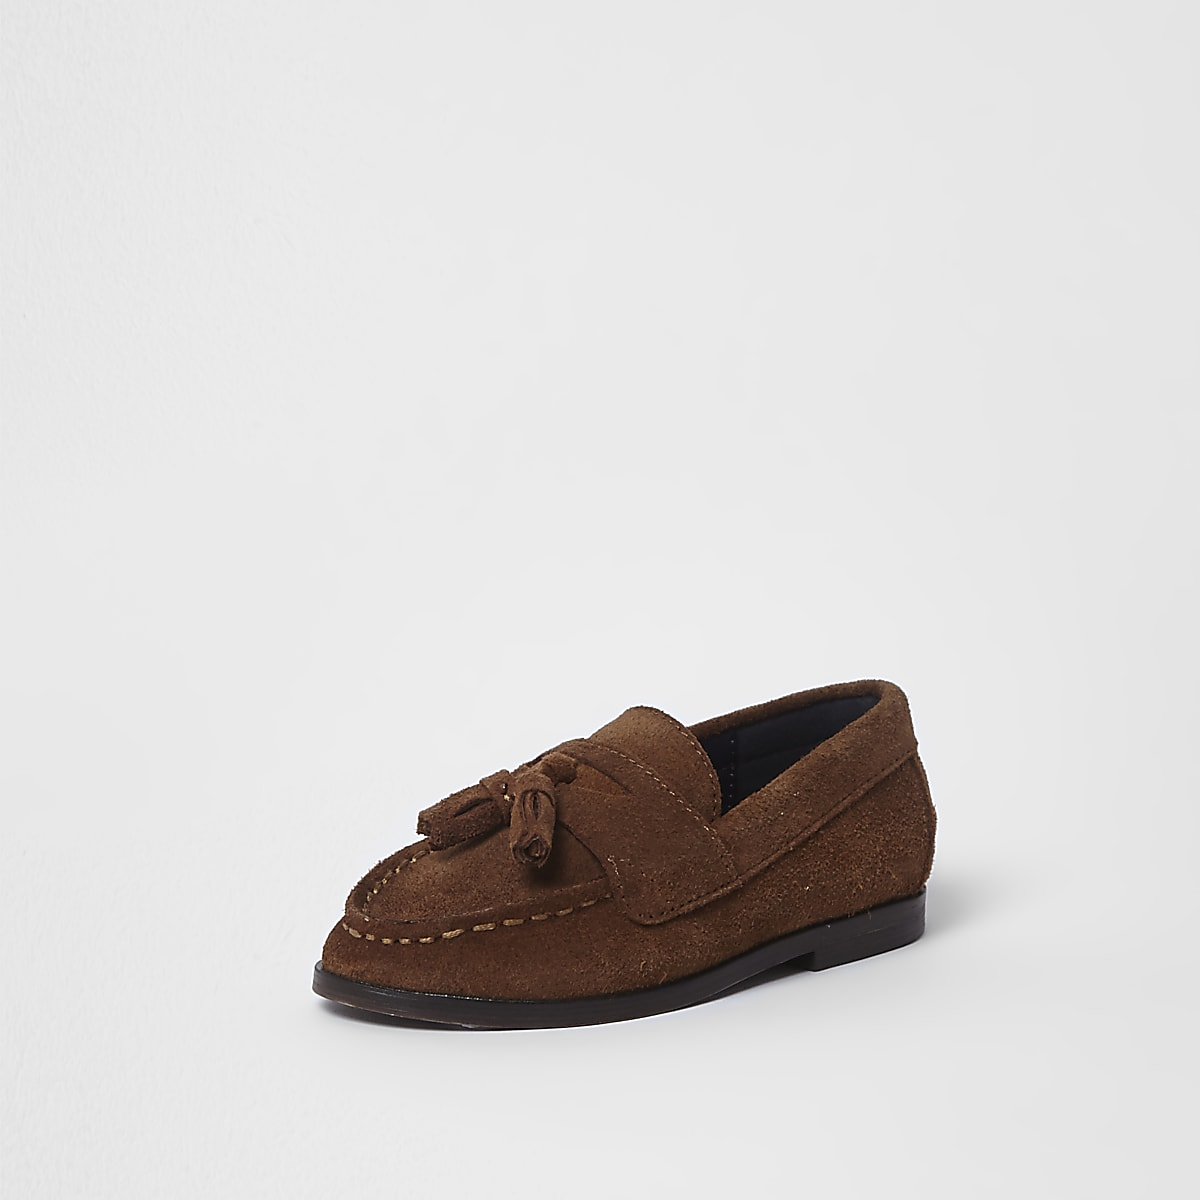 8cc98102a3a Mini boys brown tassel loafers - Baby Boys Shoes - Baby Boys Shoes ...